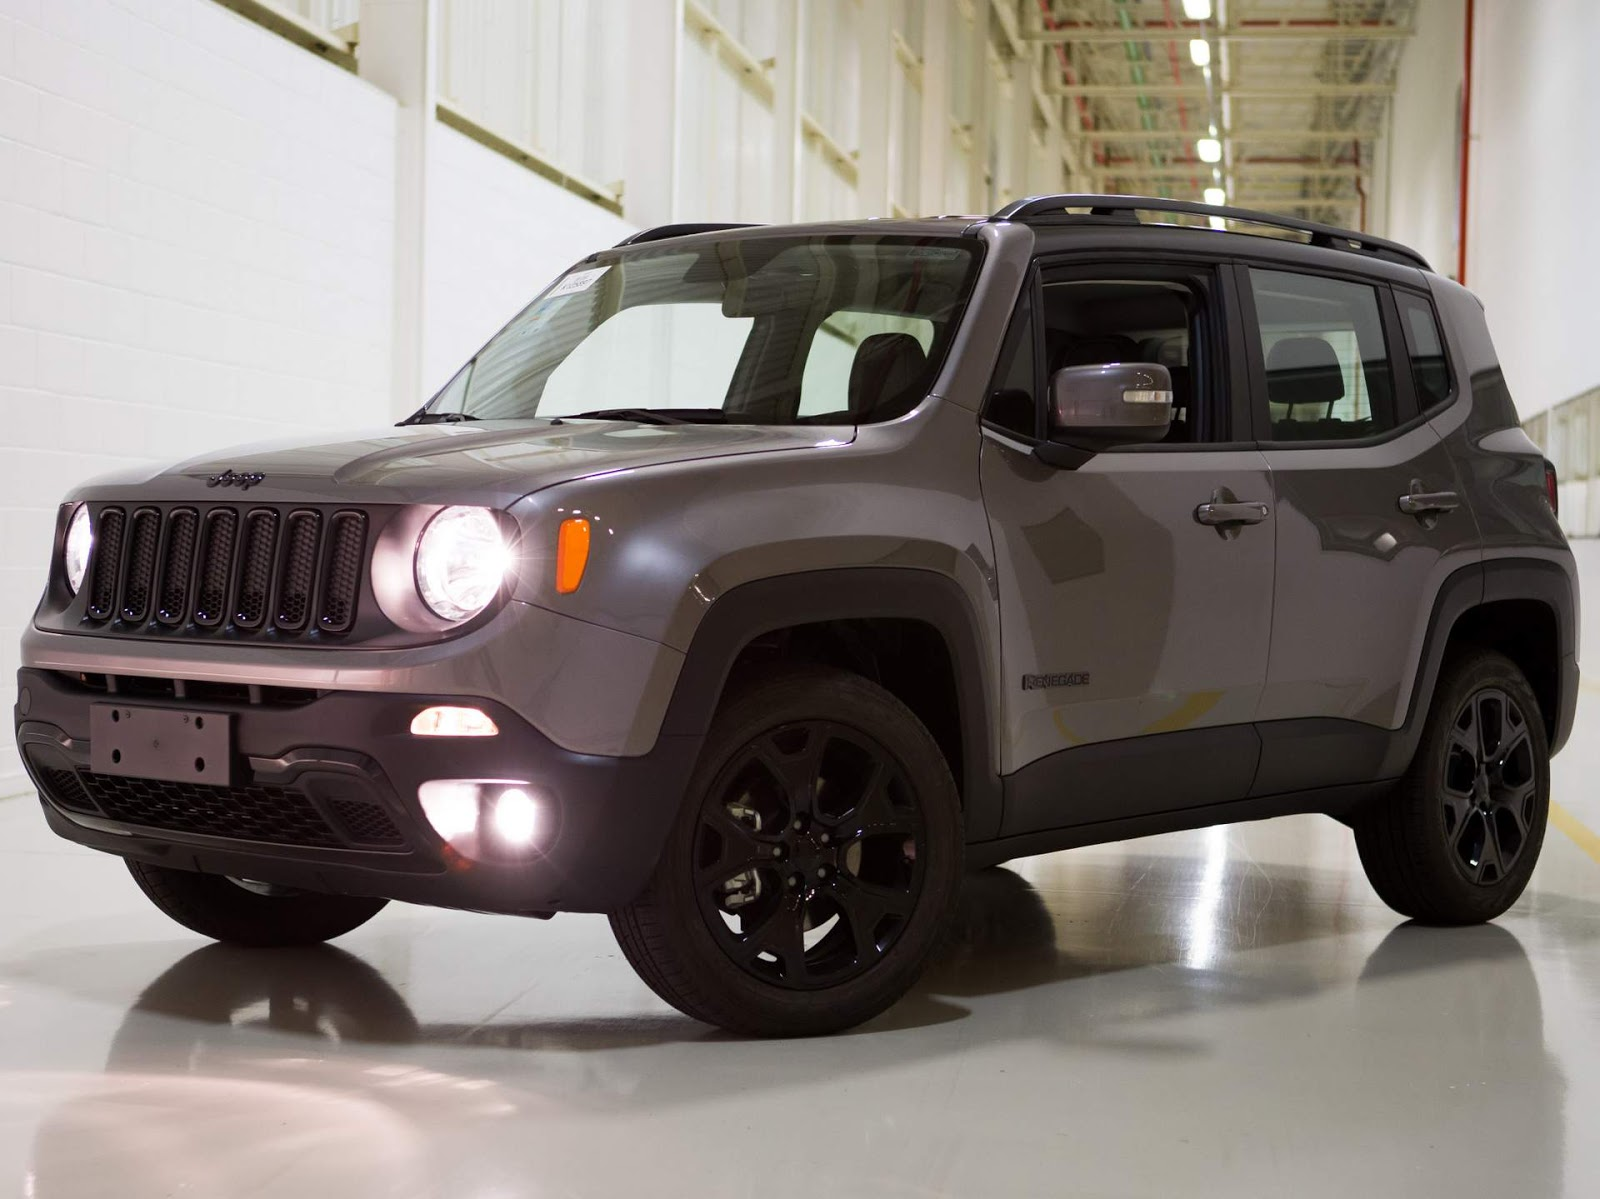 jeep renegade 2018 fotos vers es pre os e consumo car blog br. Black Bedroom Furniture Sets. Home Design Ideas